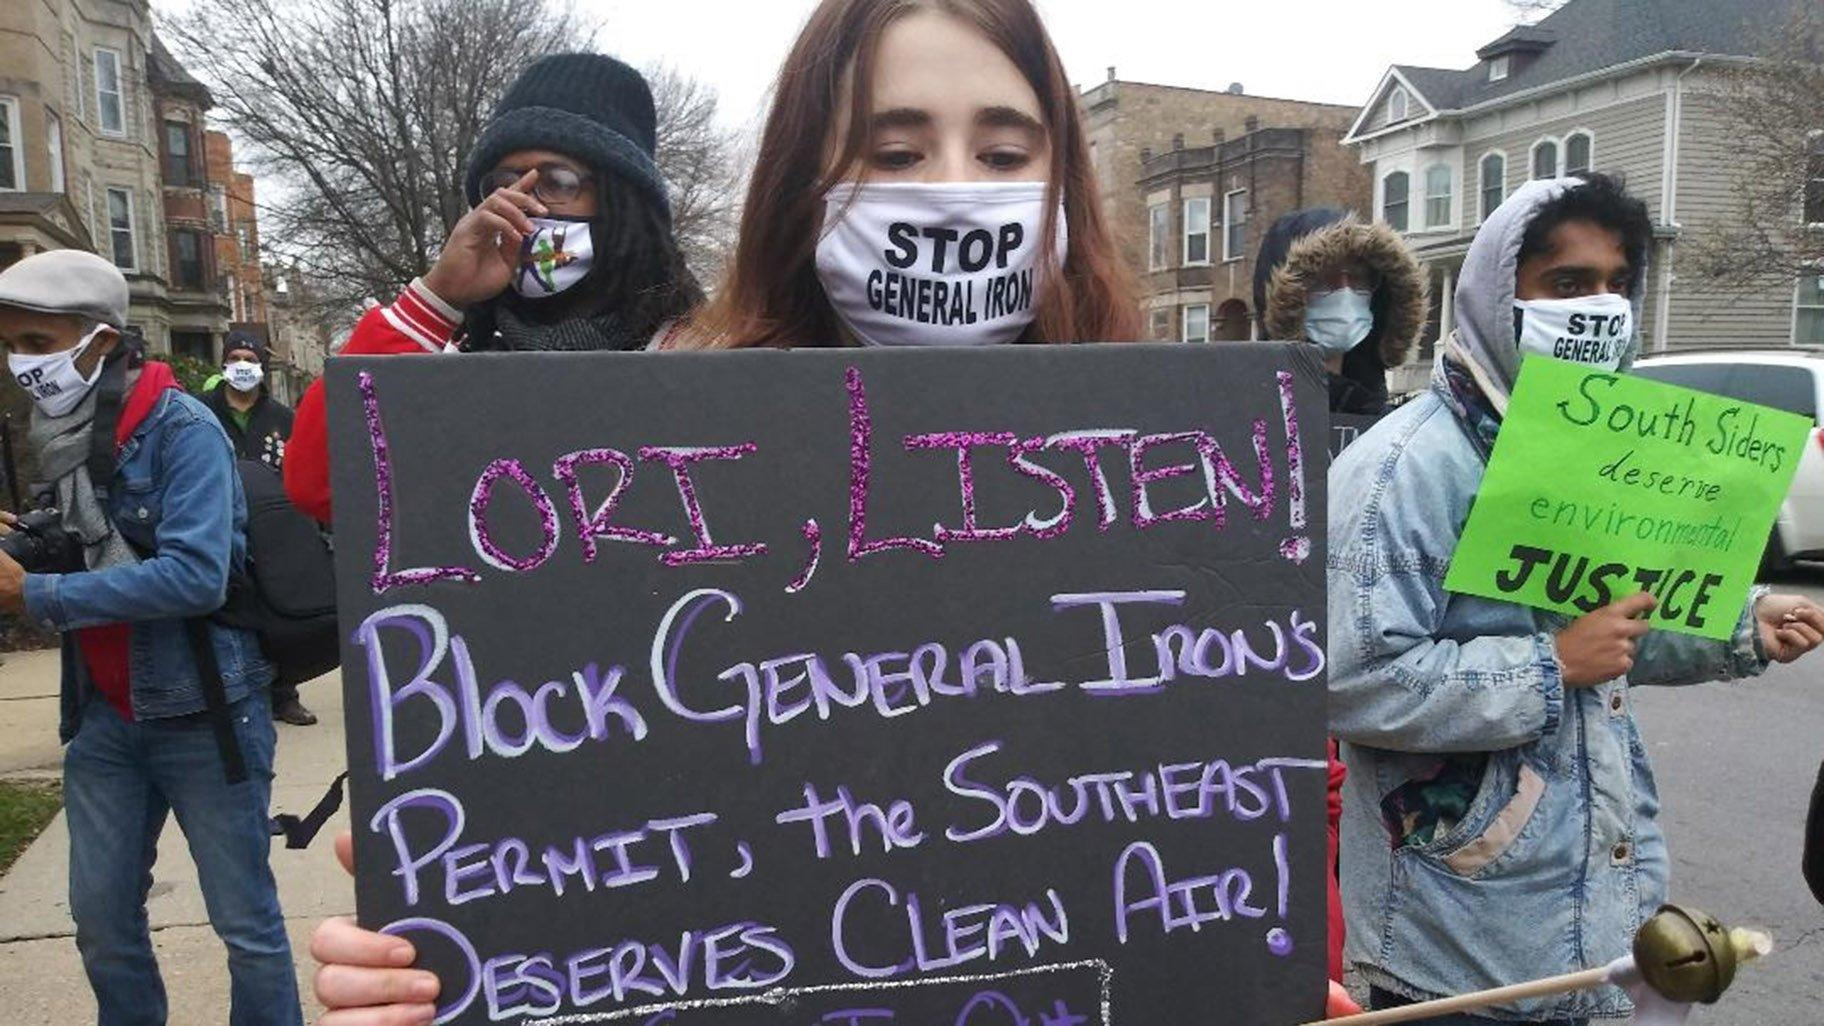 Protesters gather near the Logan Square home of Mayor Lori Lightfoot to voice their opposition to General Iron's plans to move to the Southeast Side on Saturday, Nov. 14, 2020. (Annemarie Mannion / WTTW News)